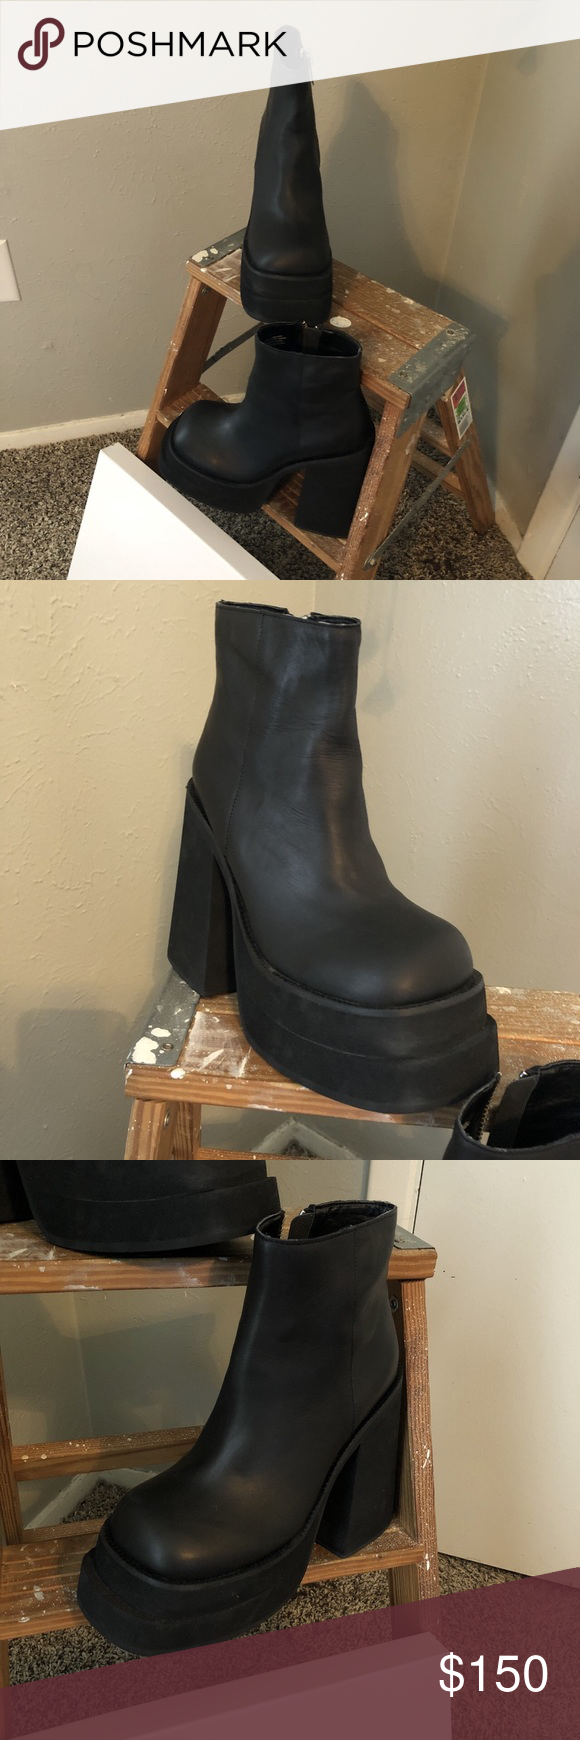 565d90b07b Unif brat platform boots Very cute 90s platform boots, worn once but just  not my style. UNIF Shoes Heeled Boots